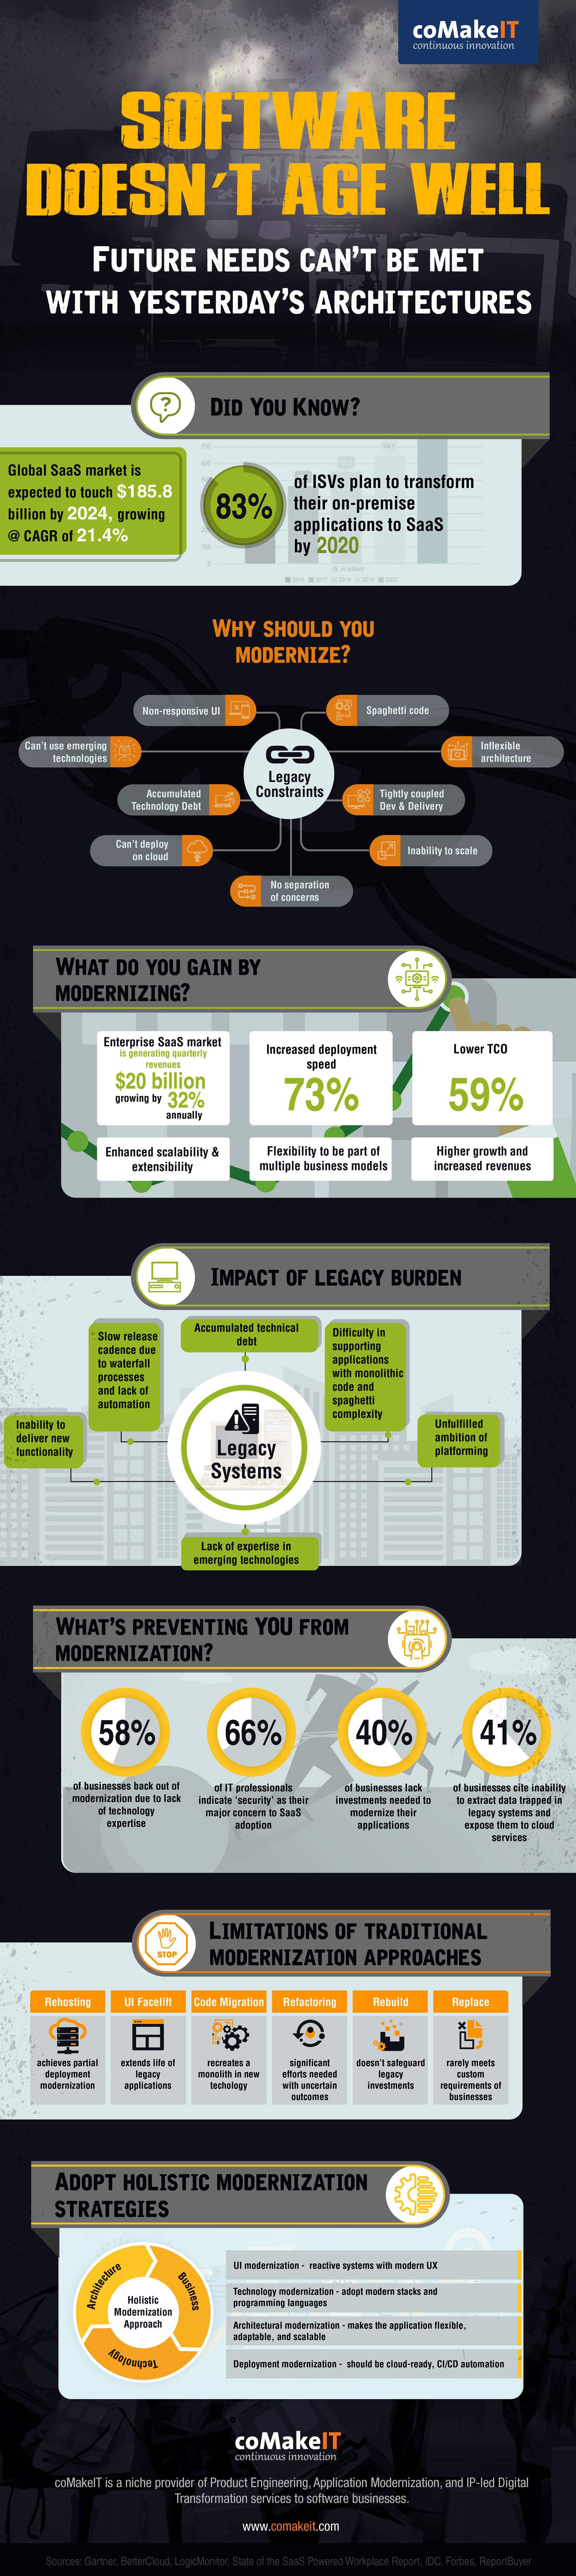 Application Modernization Infographic – Software doesn't age well